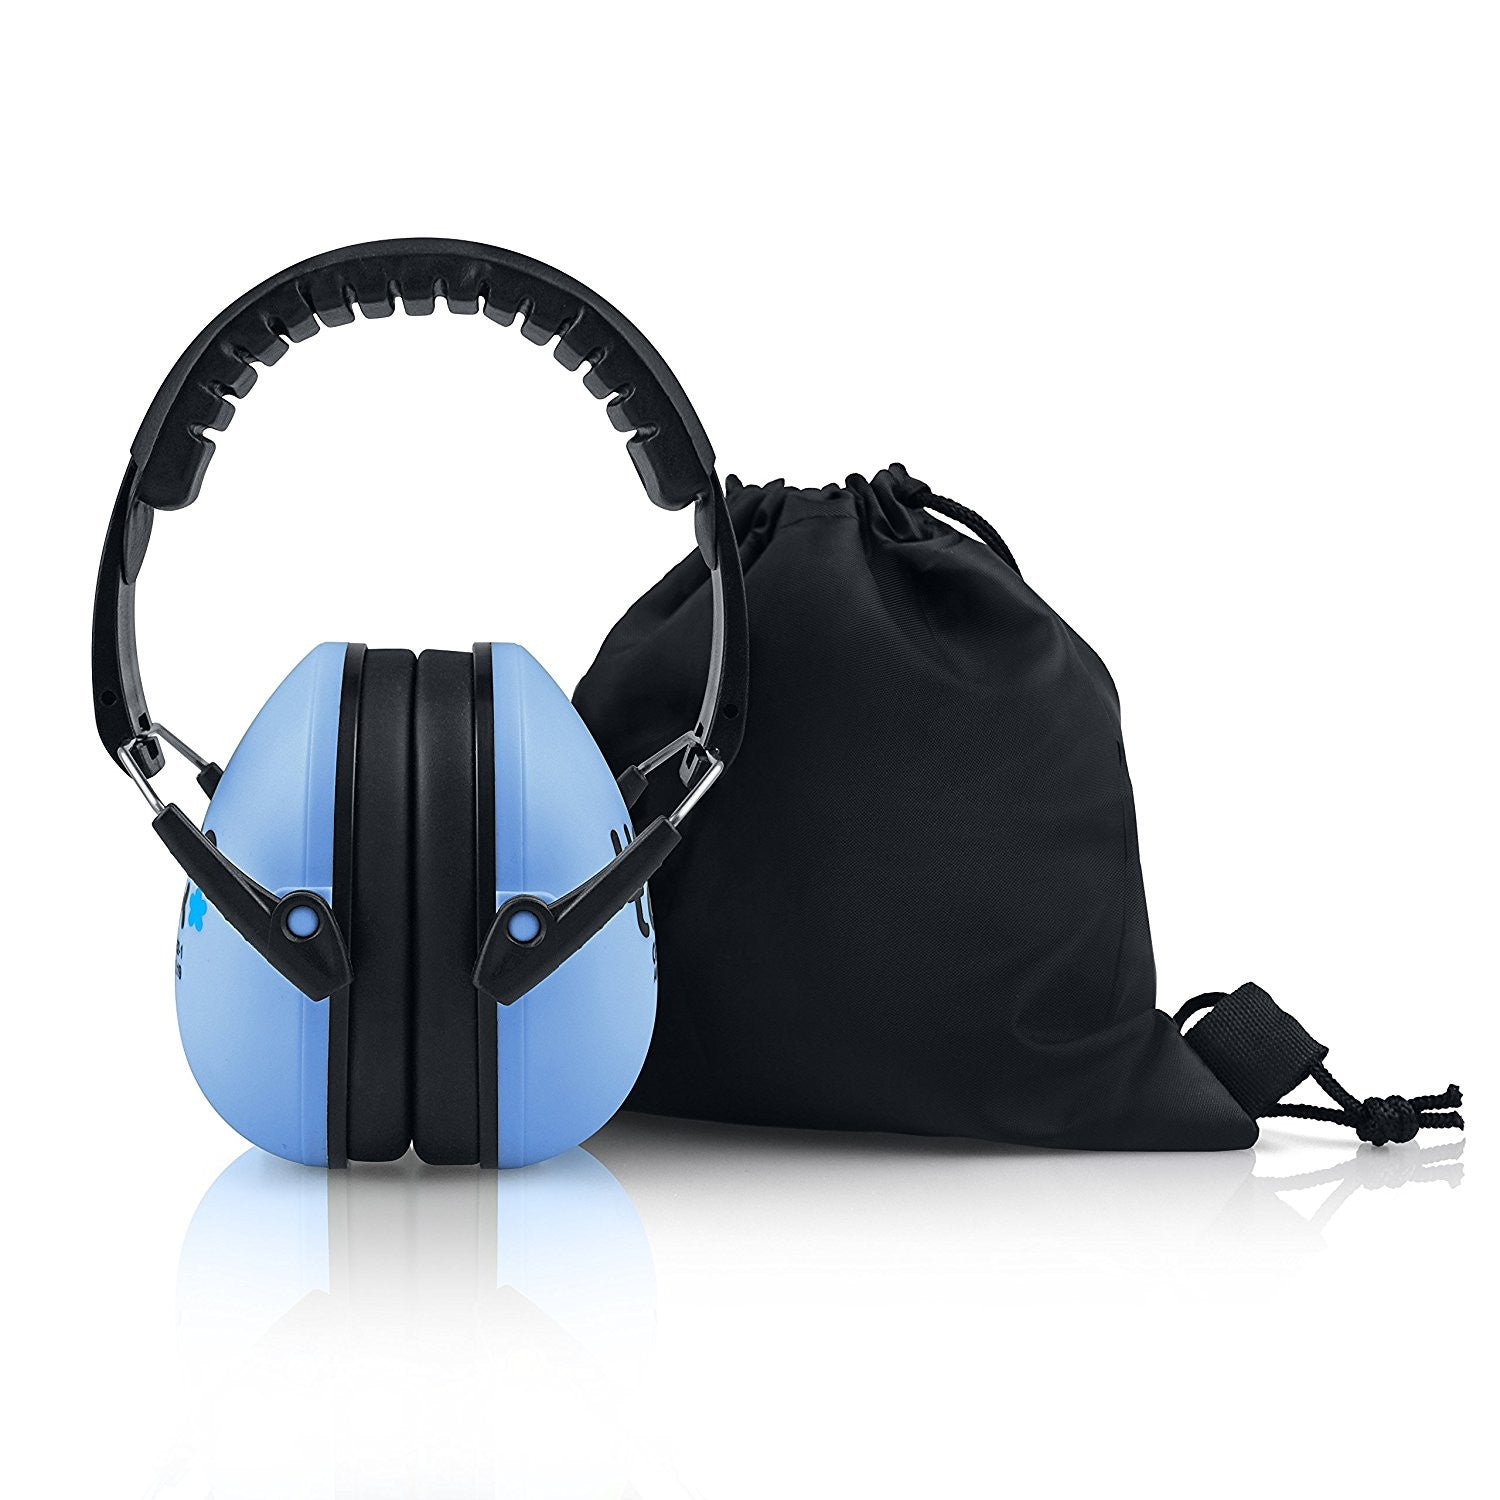 Ocean Blue Senna Earmuffs Hearing Protection with Travel Bag